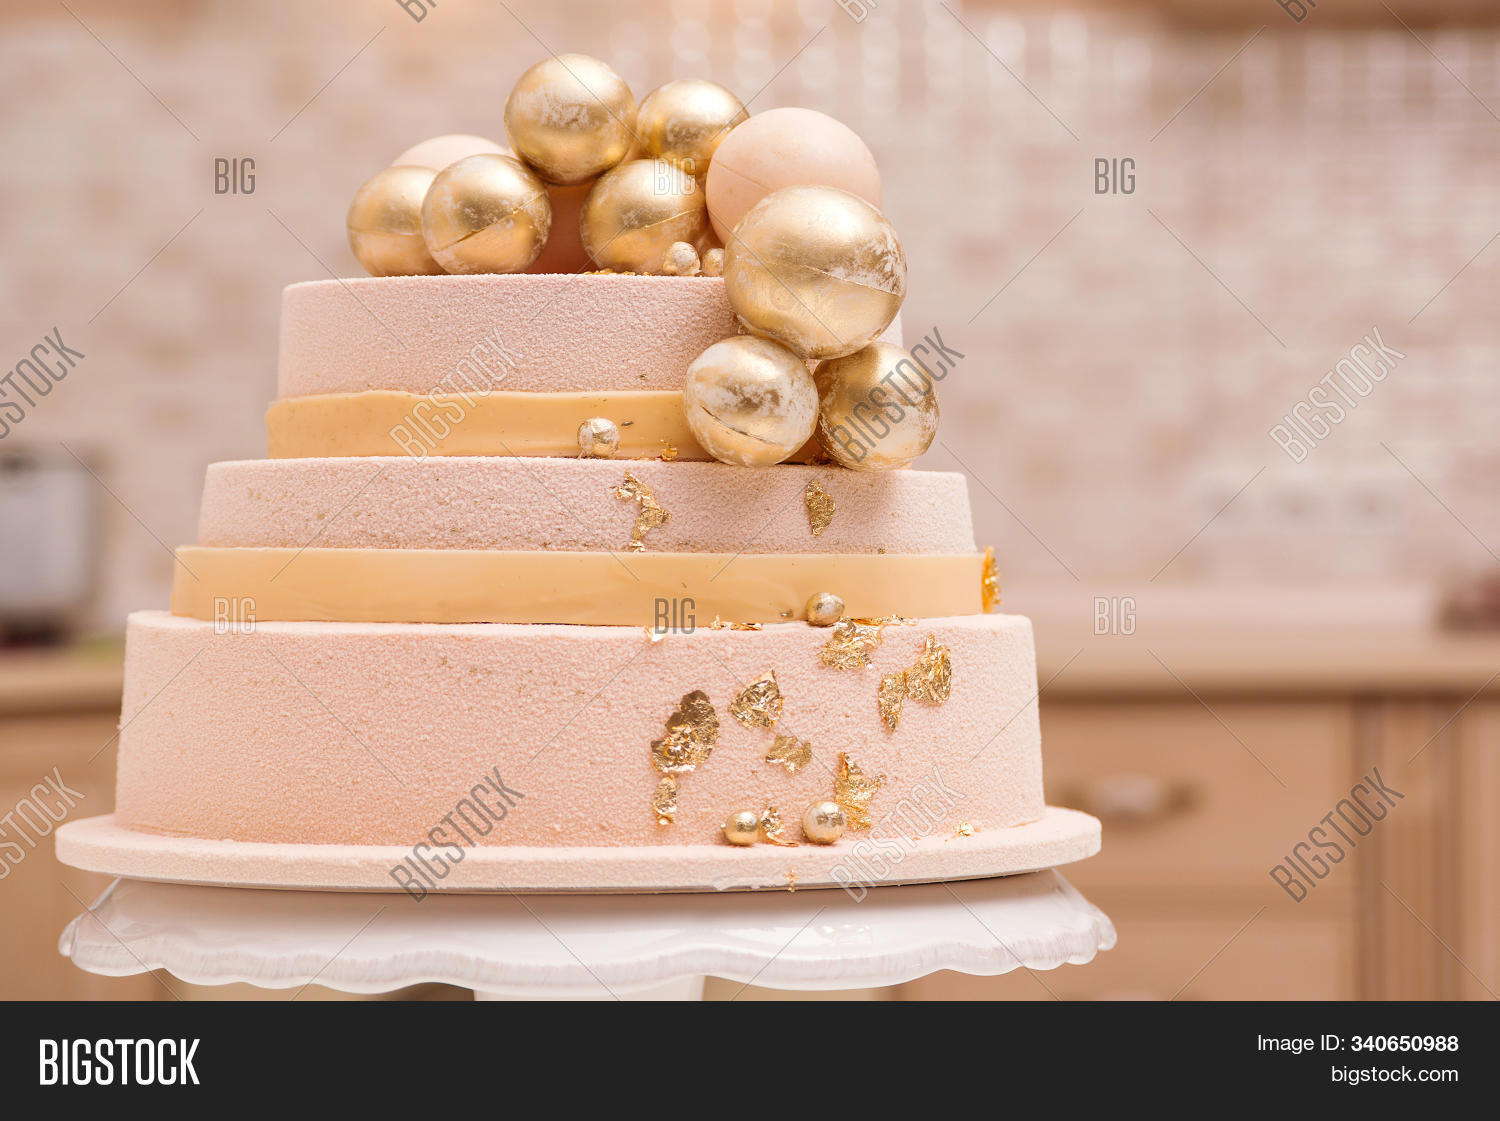 Magnificent Tiered Birthday Cake Image Photo Free Trial Bigstock Funny Birthday Cards Online Inifofree Goldxyz